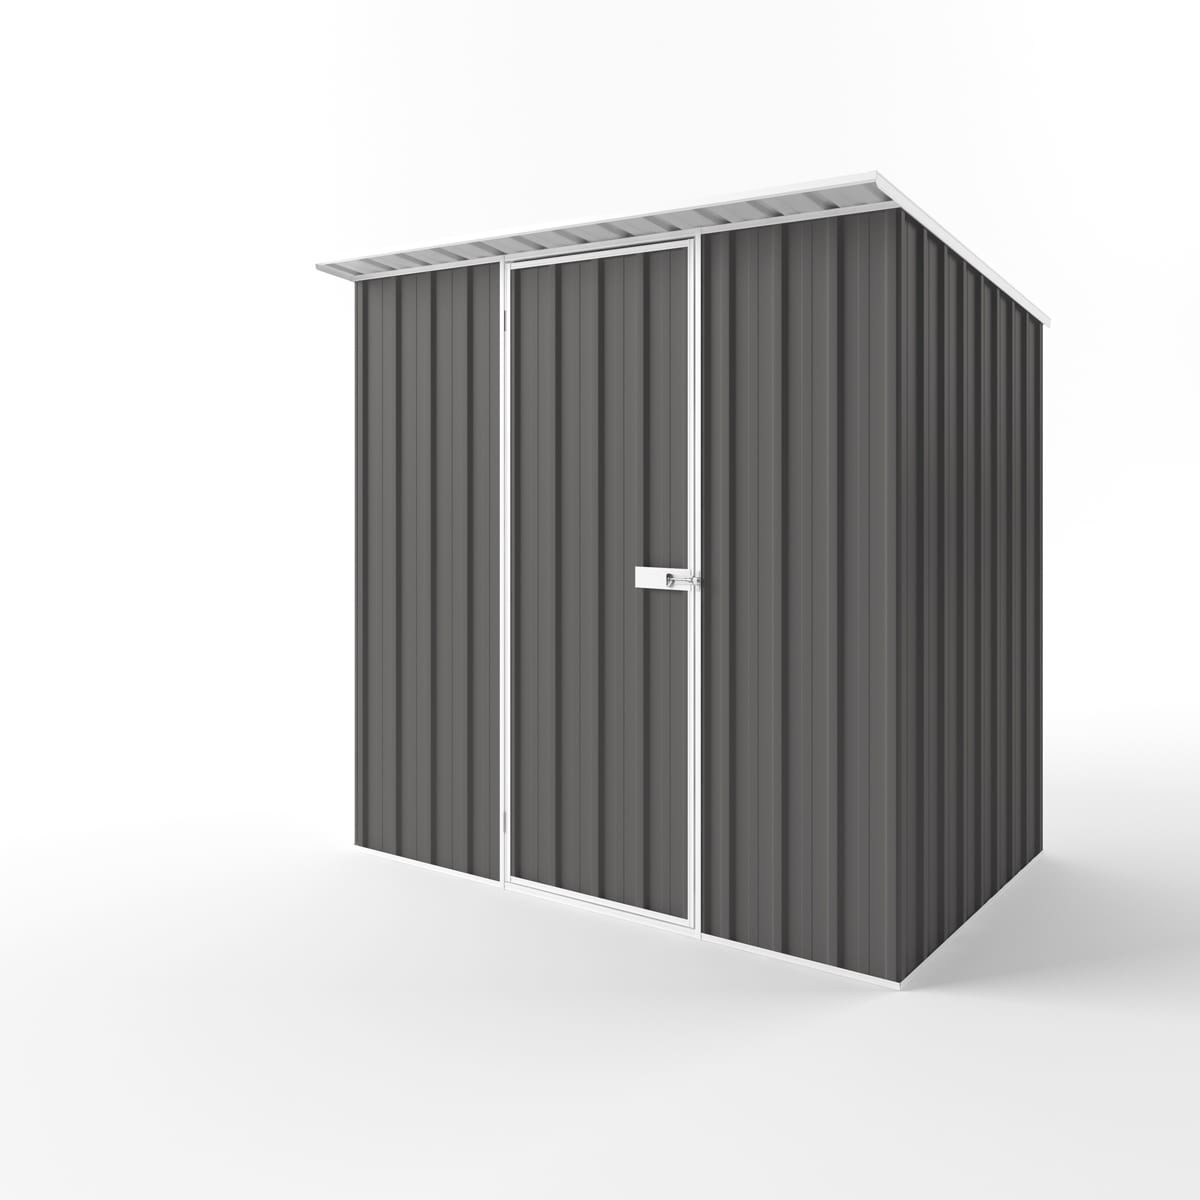 Outdoor World - Garden Shed